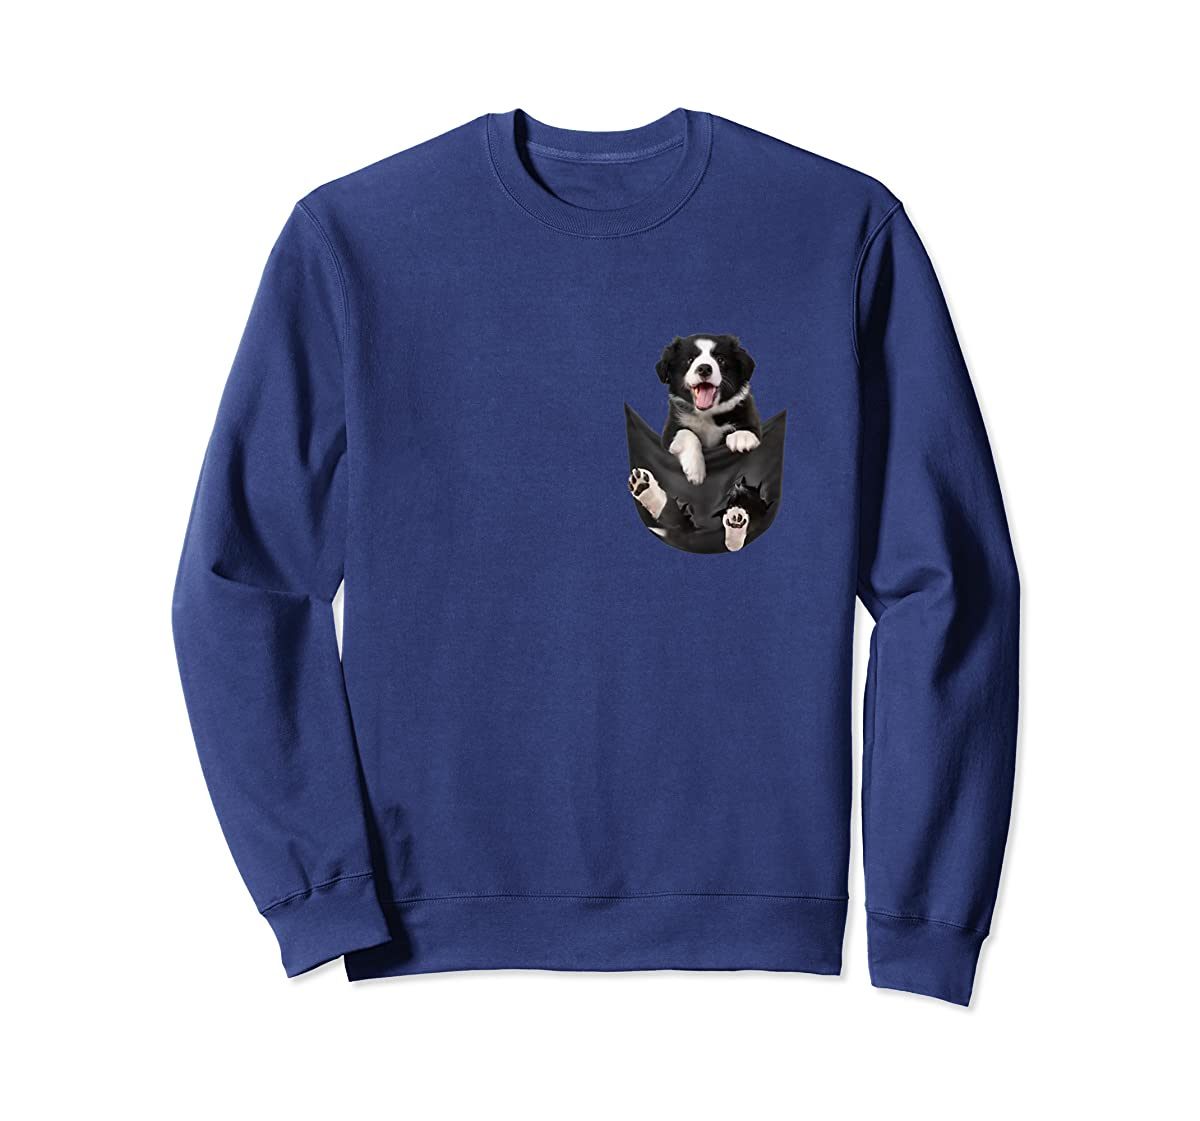 Border Collies Inside In Pocket Dog Lover T shirt Funny Cute-Sweatshirt-Navy